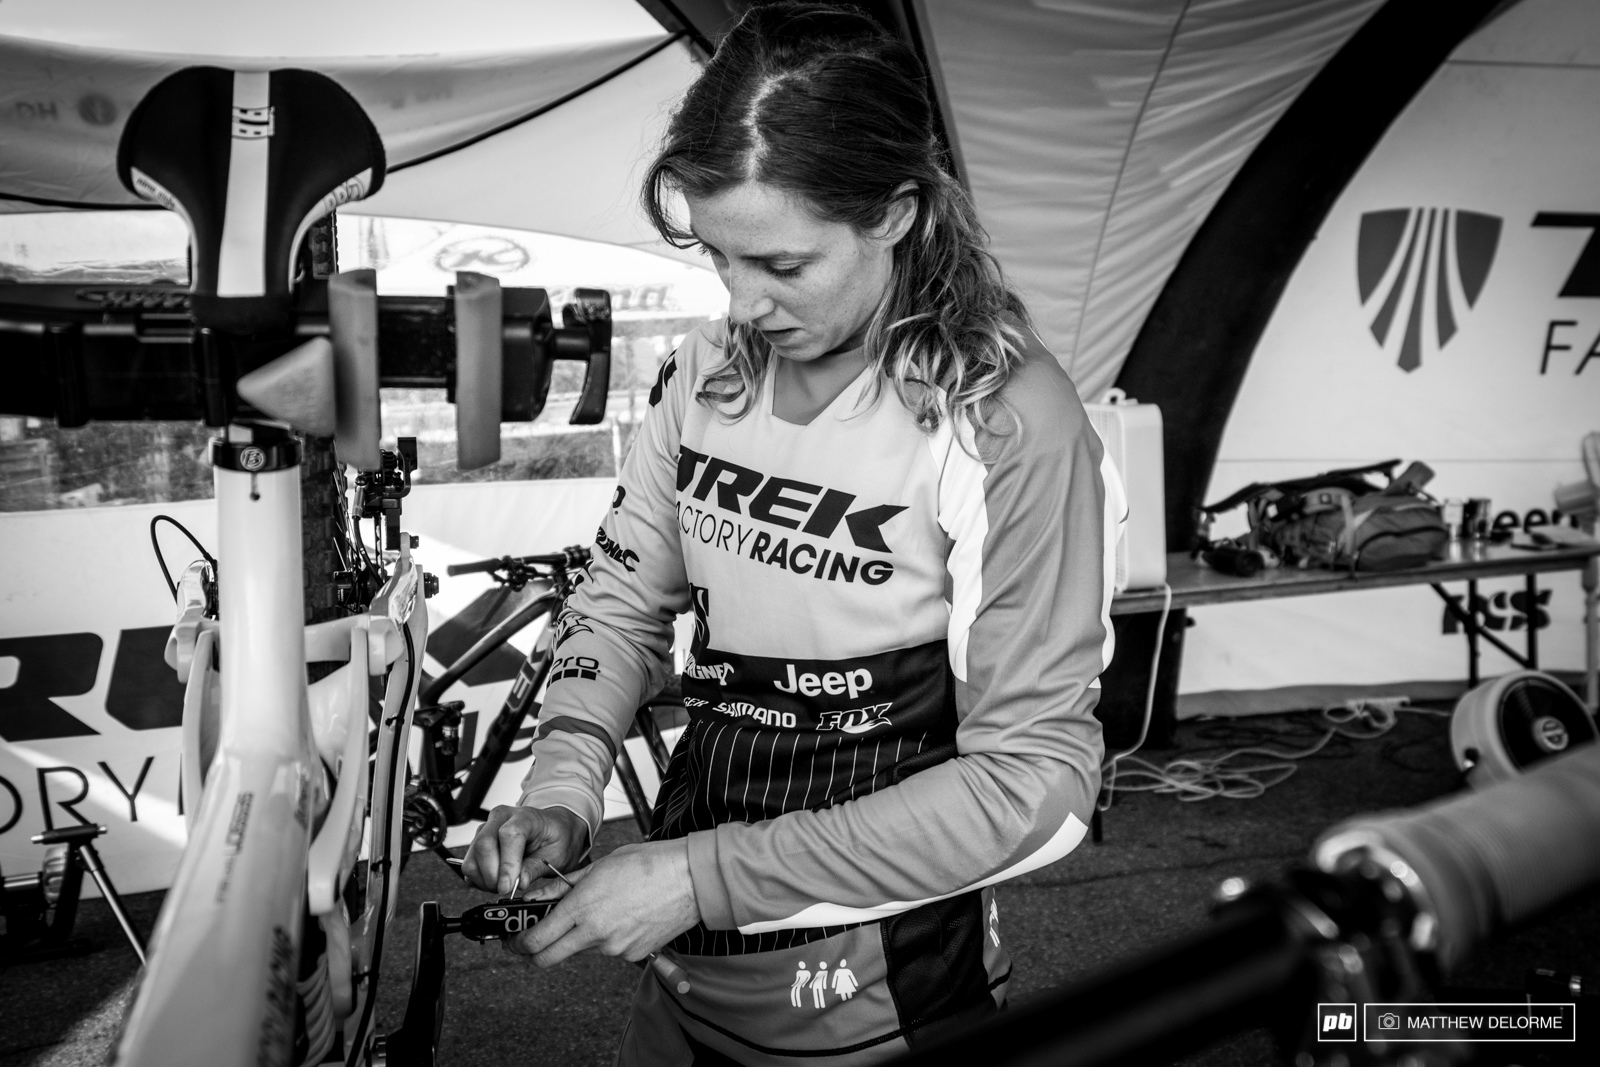 Rachel Atherton makes a final adjustment to the pins in her pedals before heading out for her first lap.